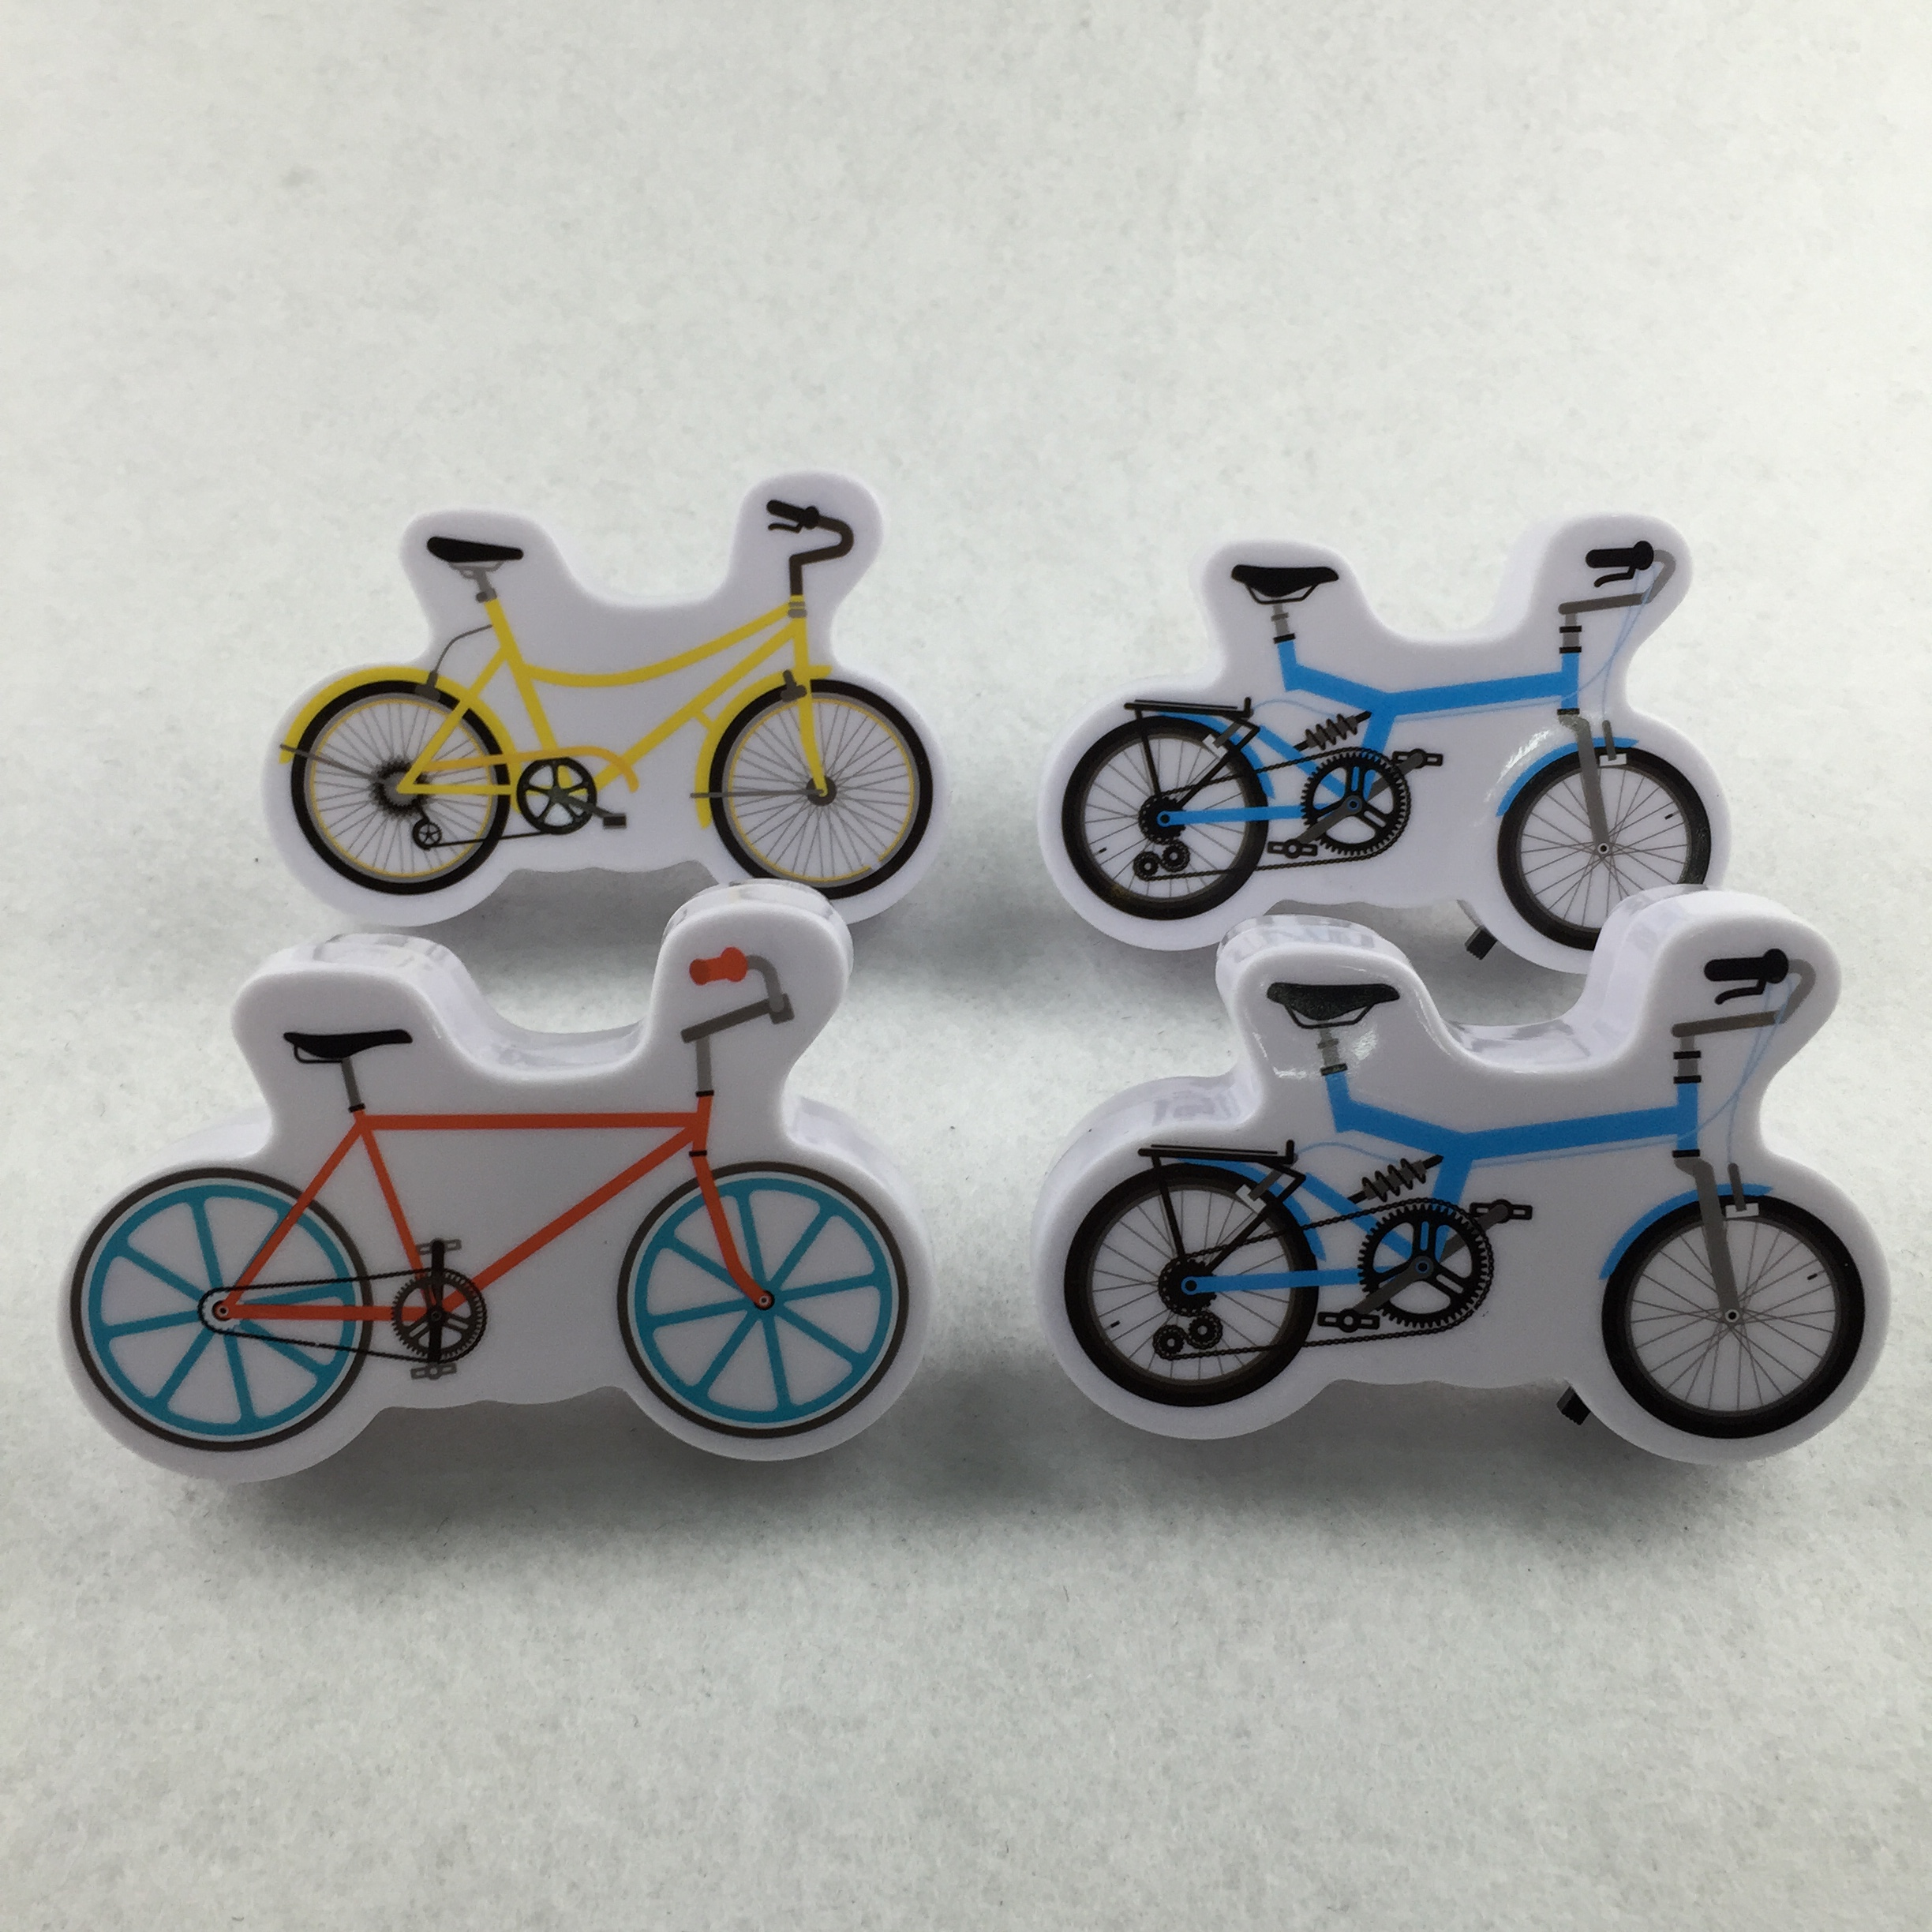 W095 Cartoon bicycle 4 SMD mini switch plug in room usage with  night light wall decoration child gift